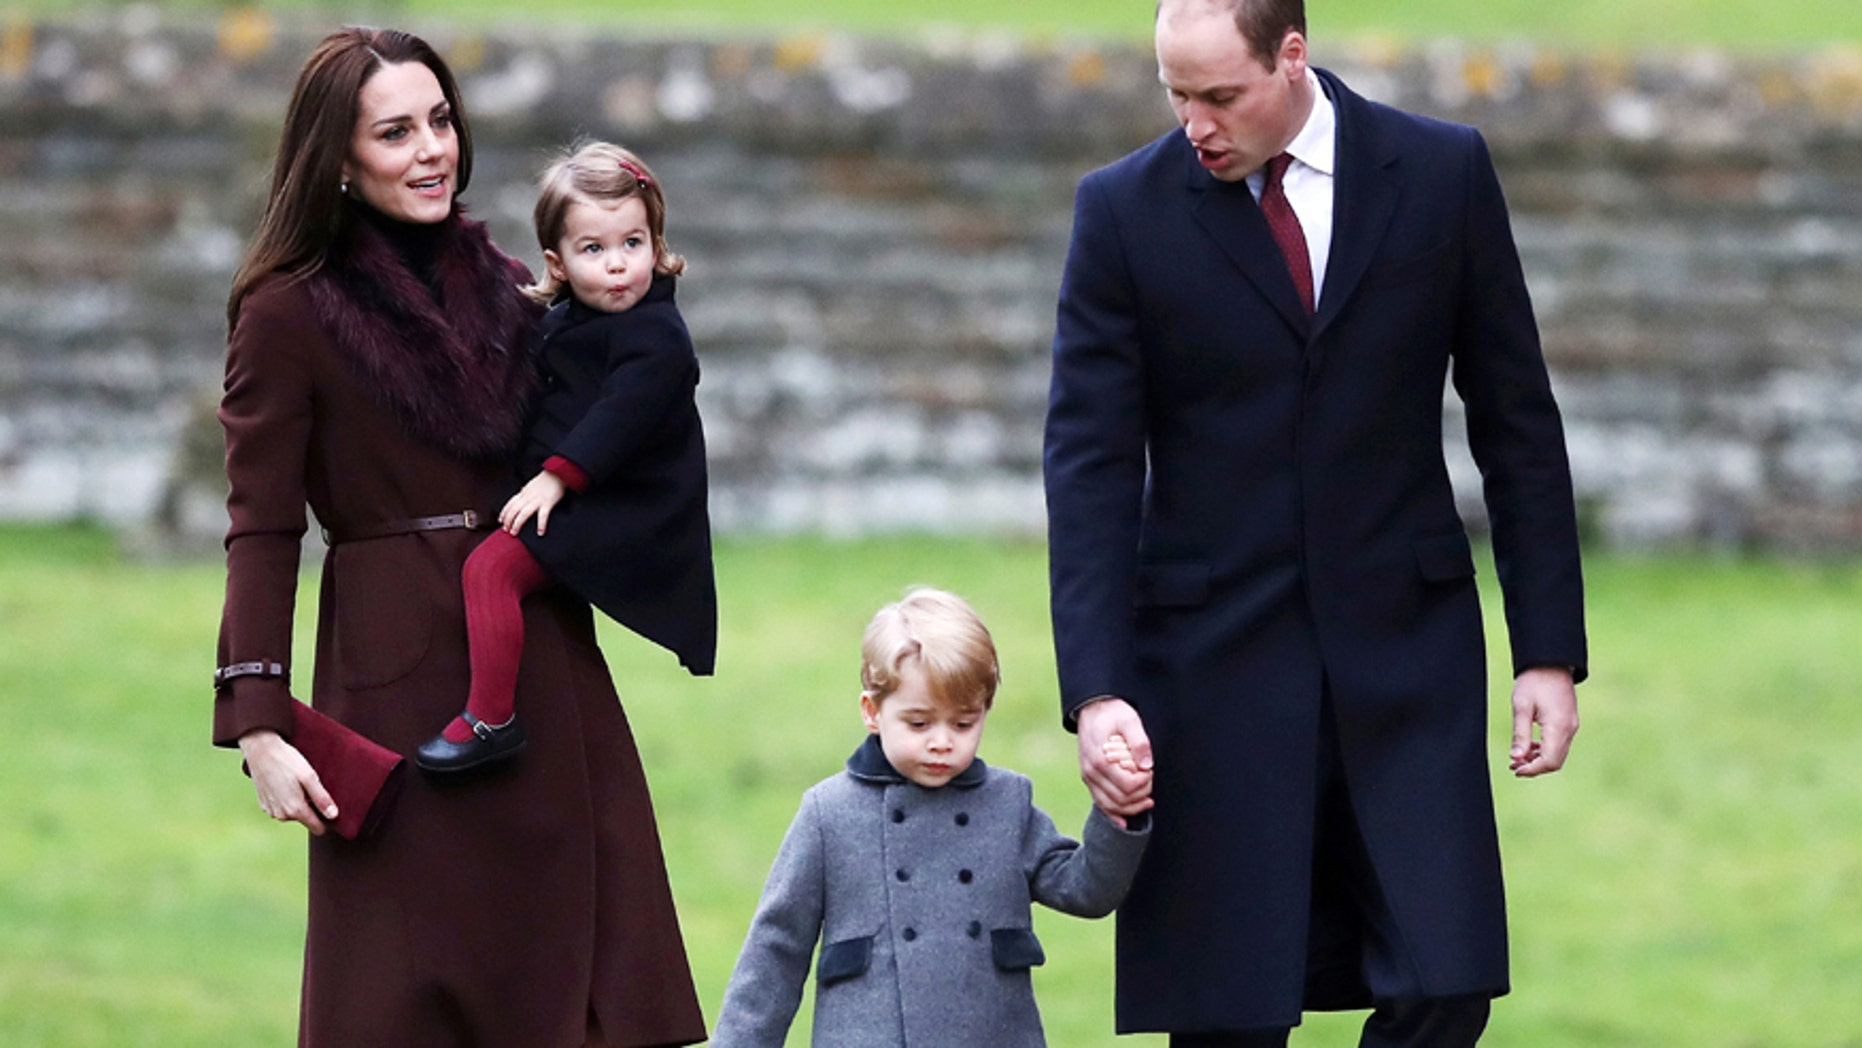 Prince William, the Duke of Cambridge (R), his wife Catherine, The Duchess of Cambridge (L), Prince George (2nd R) and Princess Charlotte arrive to attend the morning Christmas Day service at St Mark's Church in Englefield, near Bucklebury in southern England, Britain, December 25, 2016.